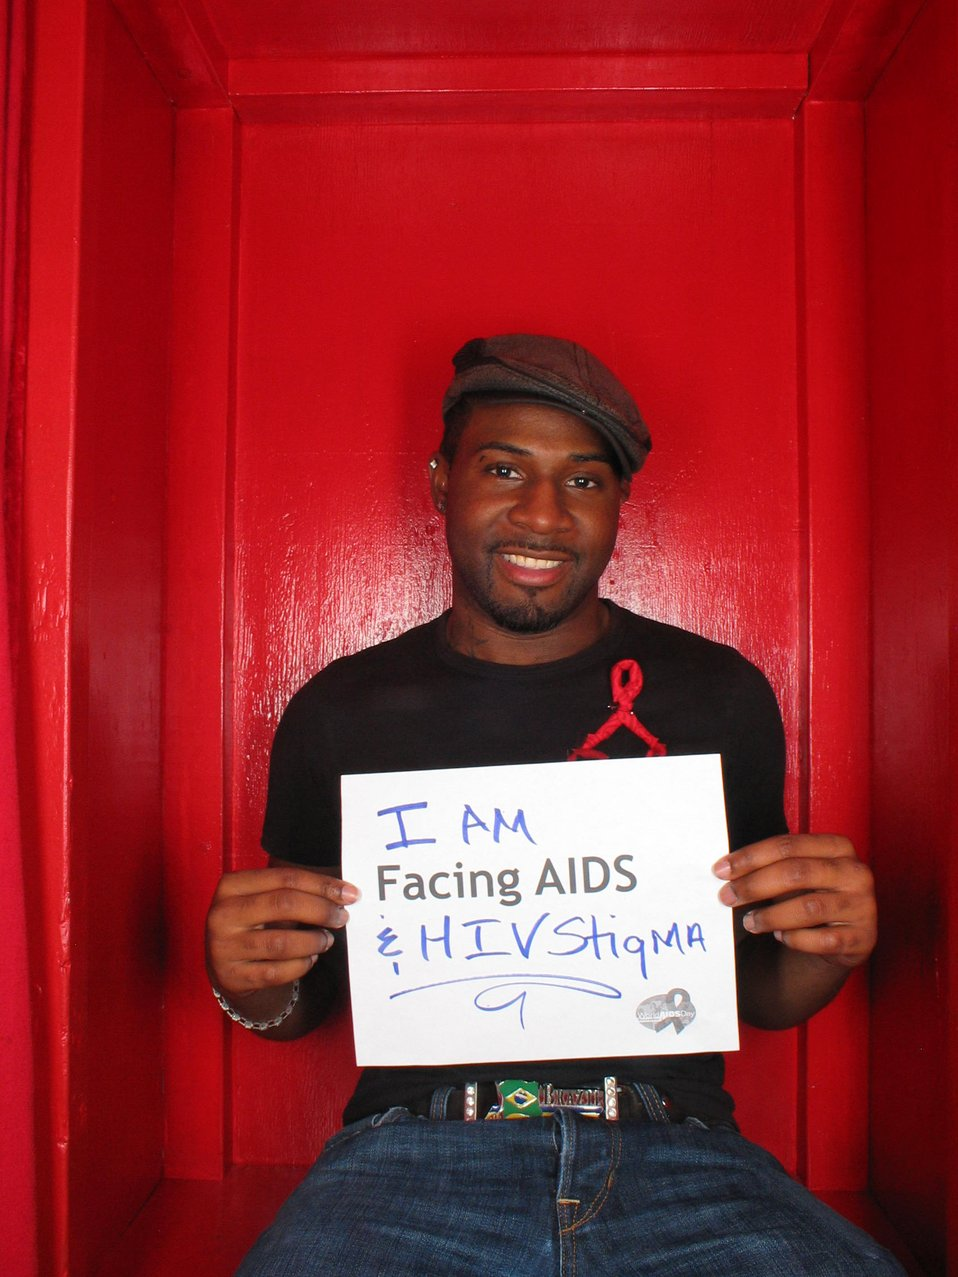 I am Facing AIDS and HIV stigma.